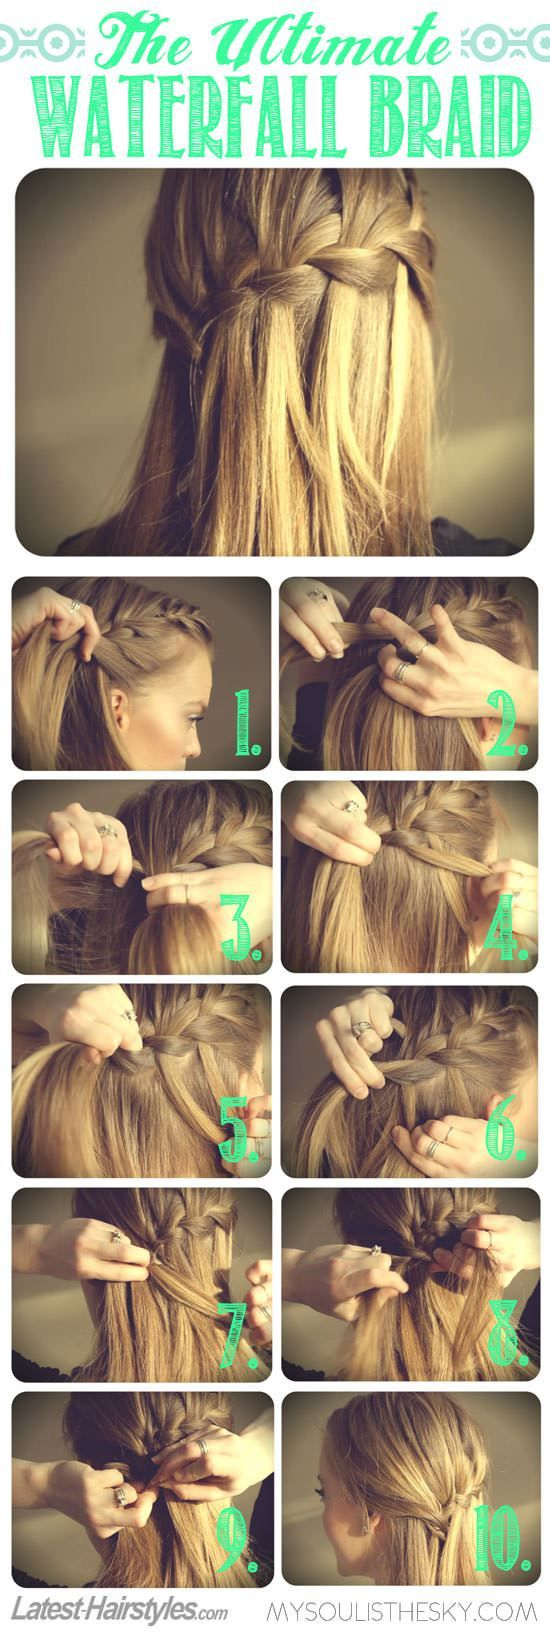 20 gorgeous braided hairstyles you can actually do yourself eye pinterestget solutioingenieria Image collections